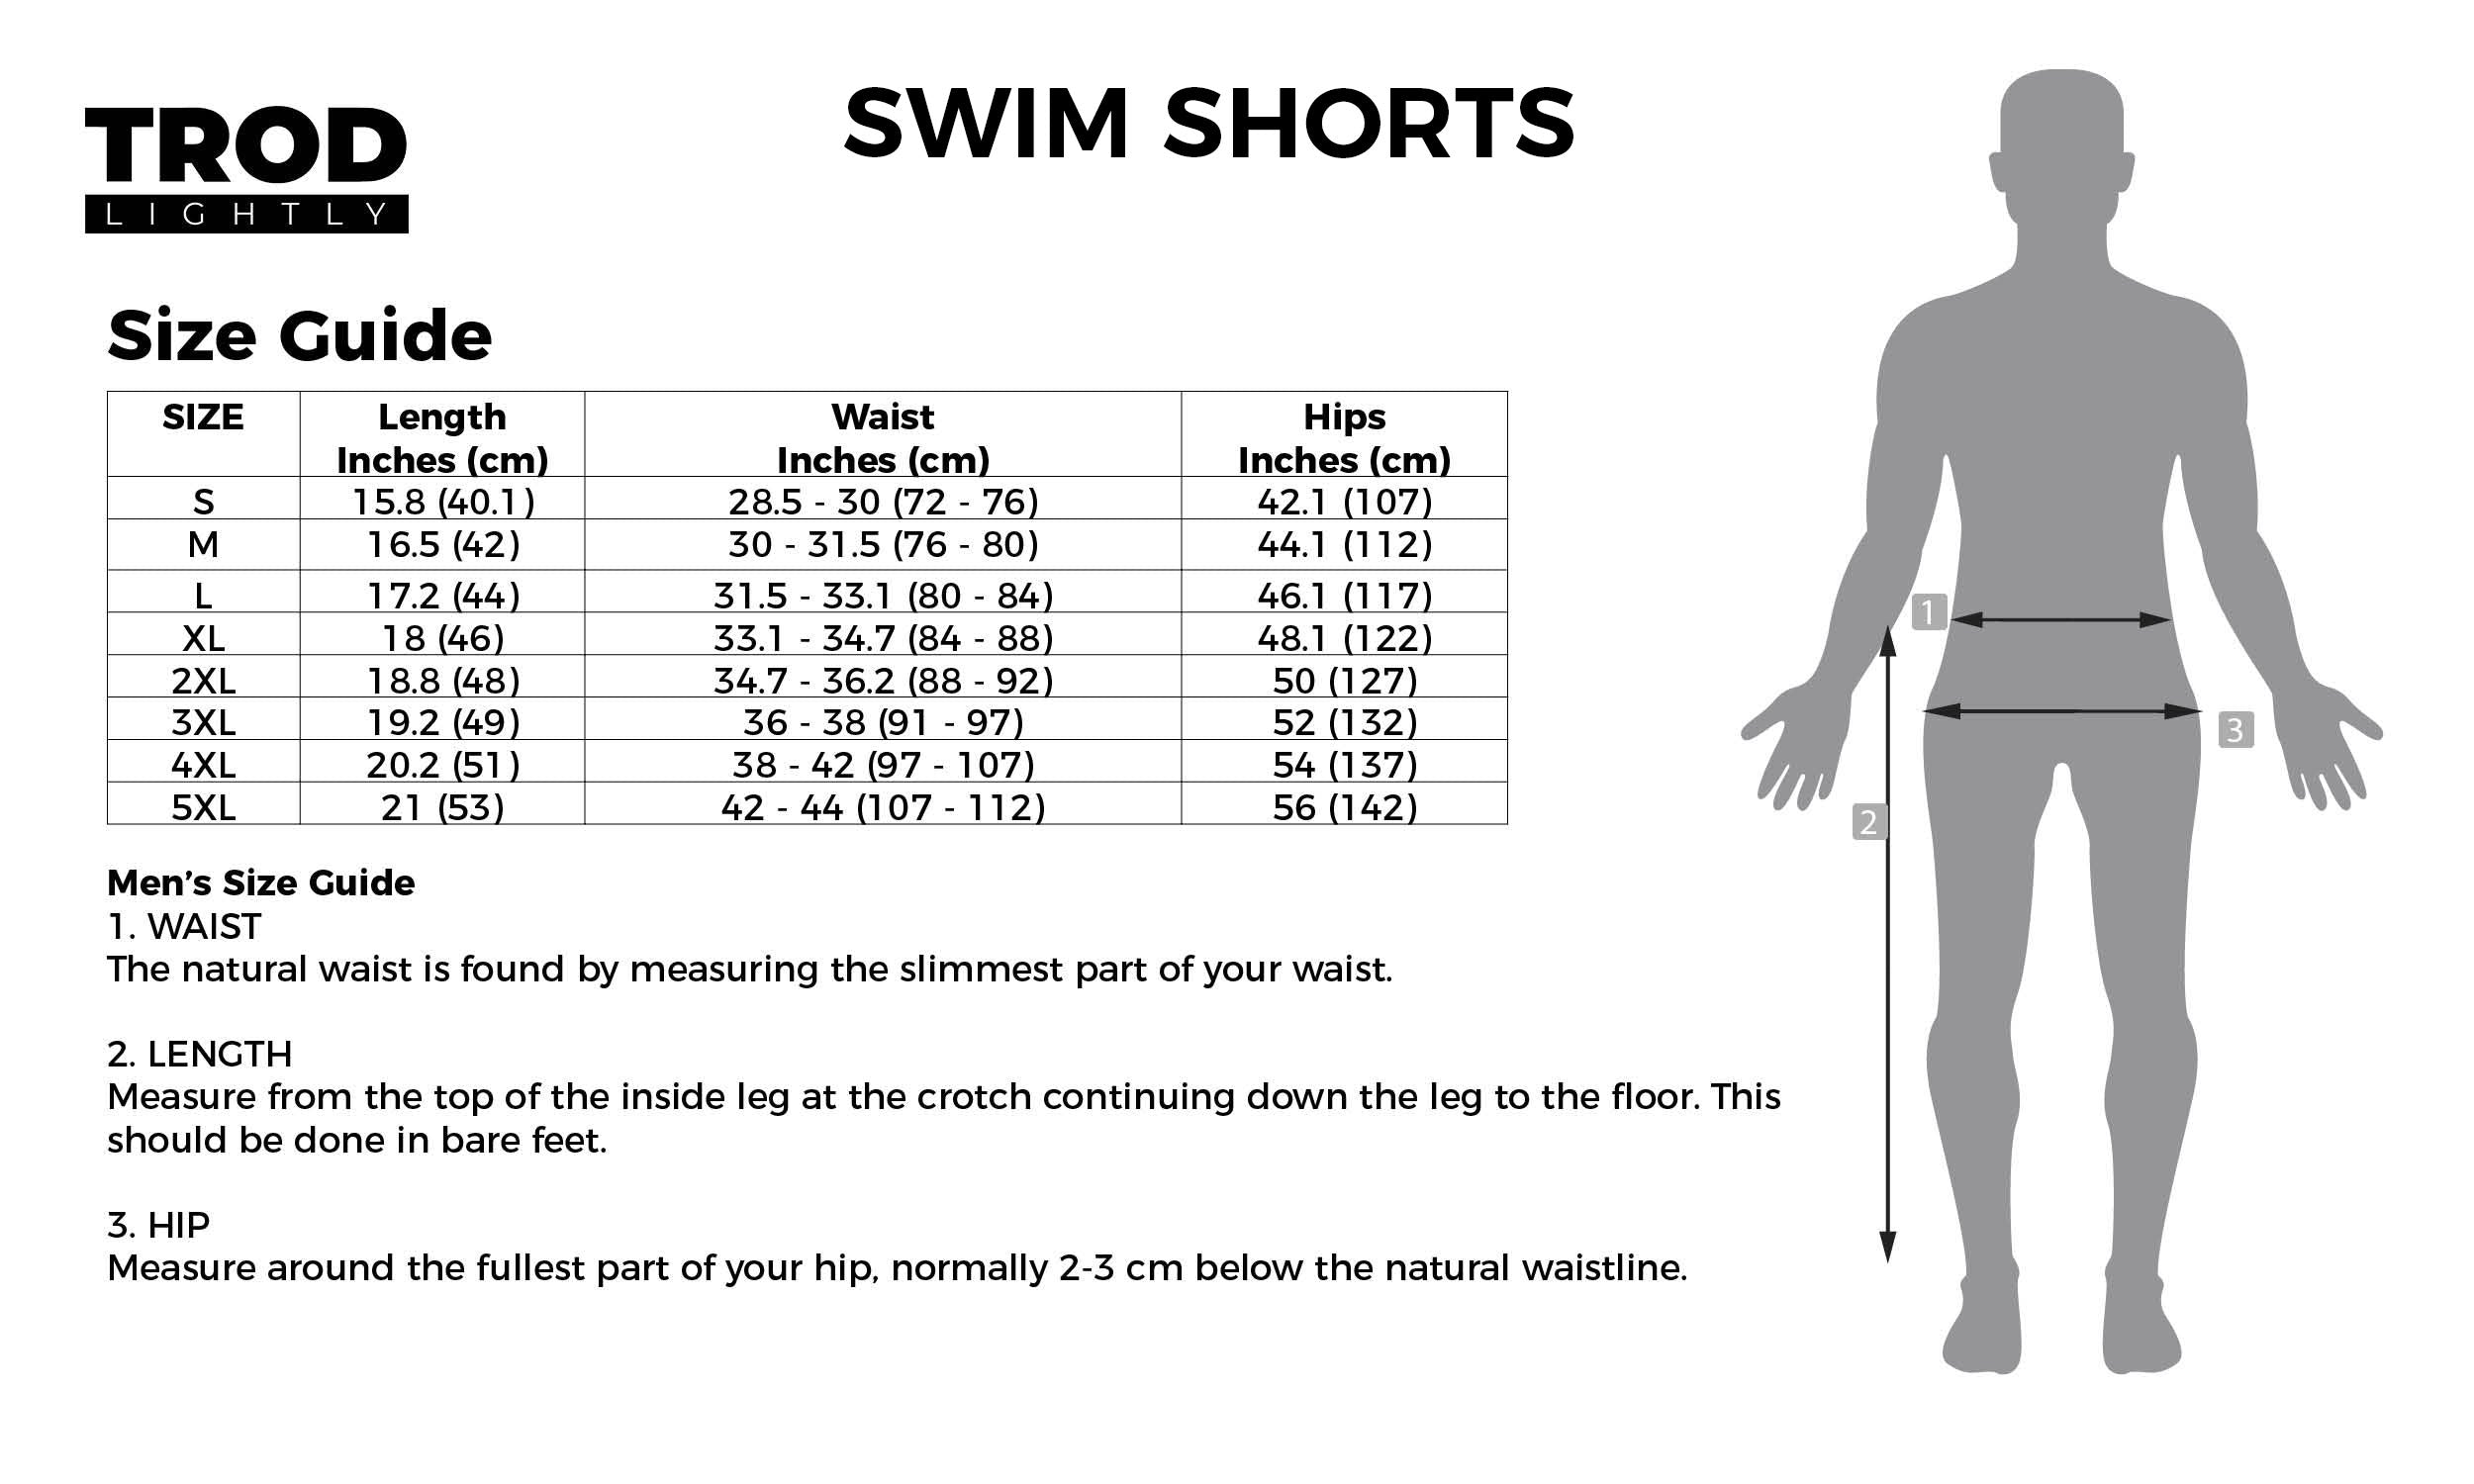 Swim Shorts Size Guide